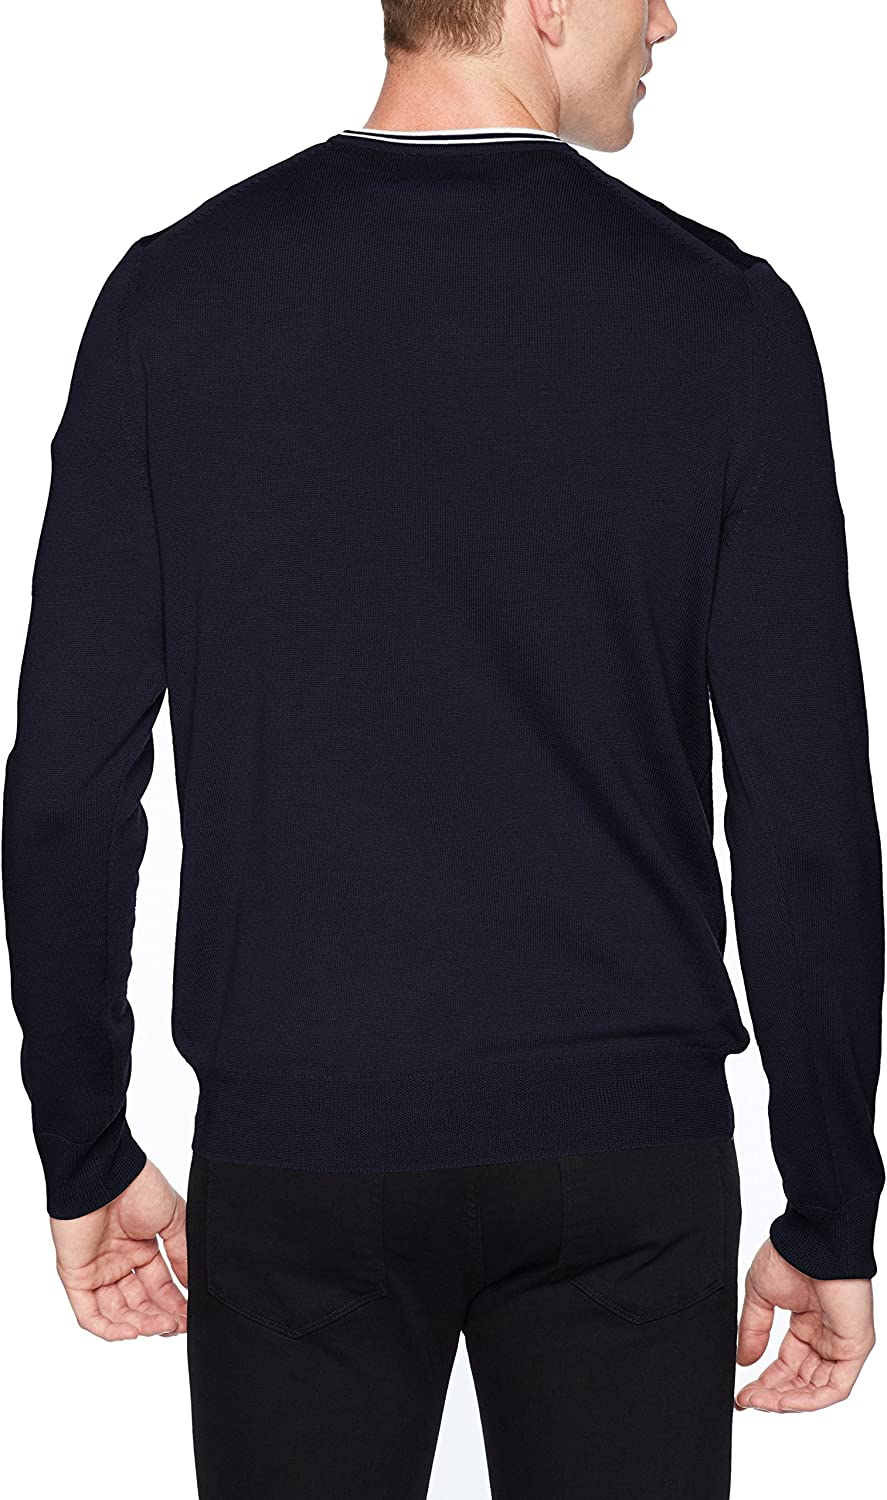 Fred Perry Men's Classic Crew Neck Sweater Dark Carbon